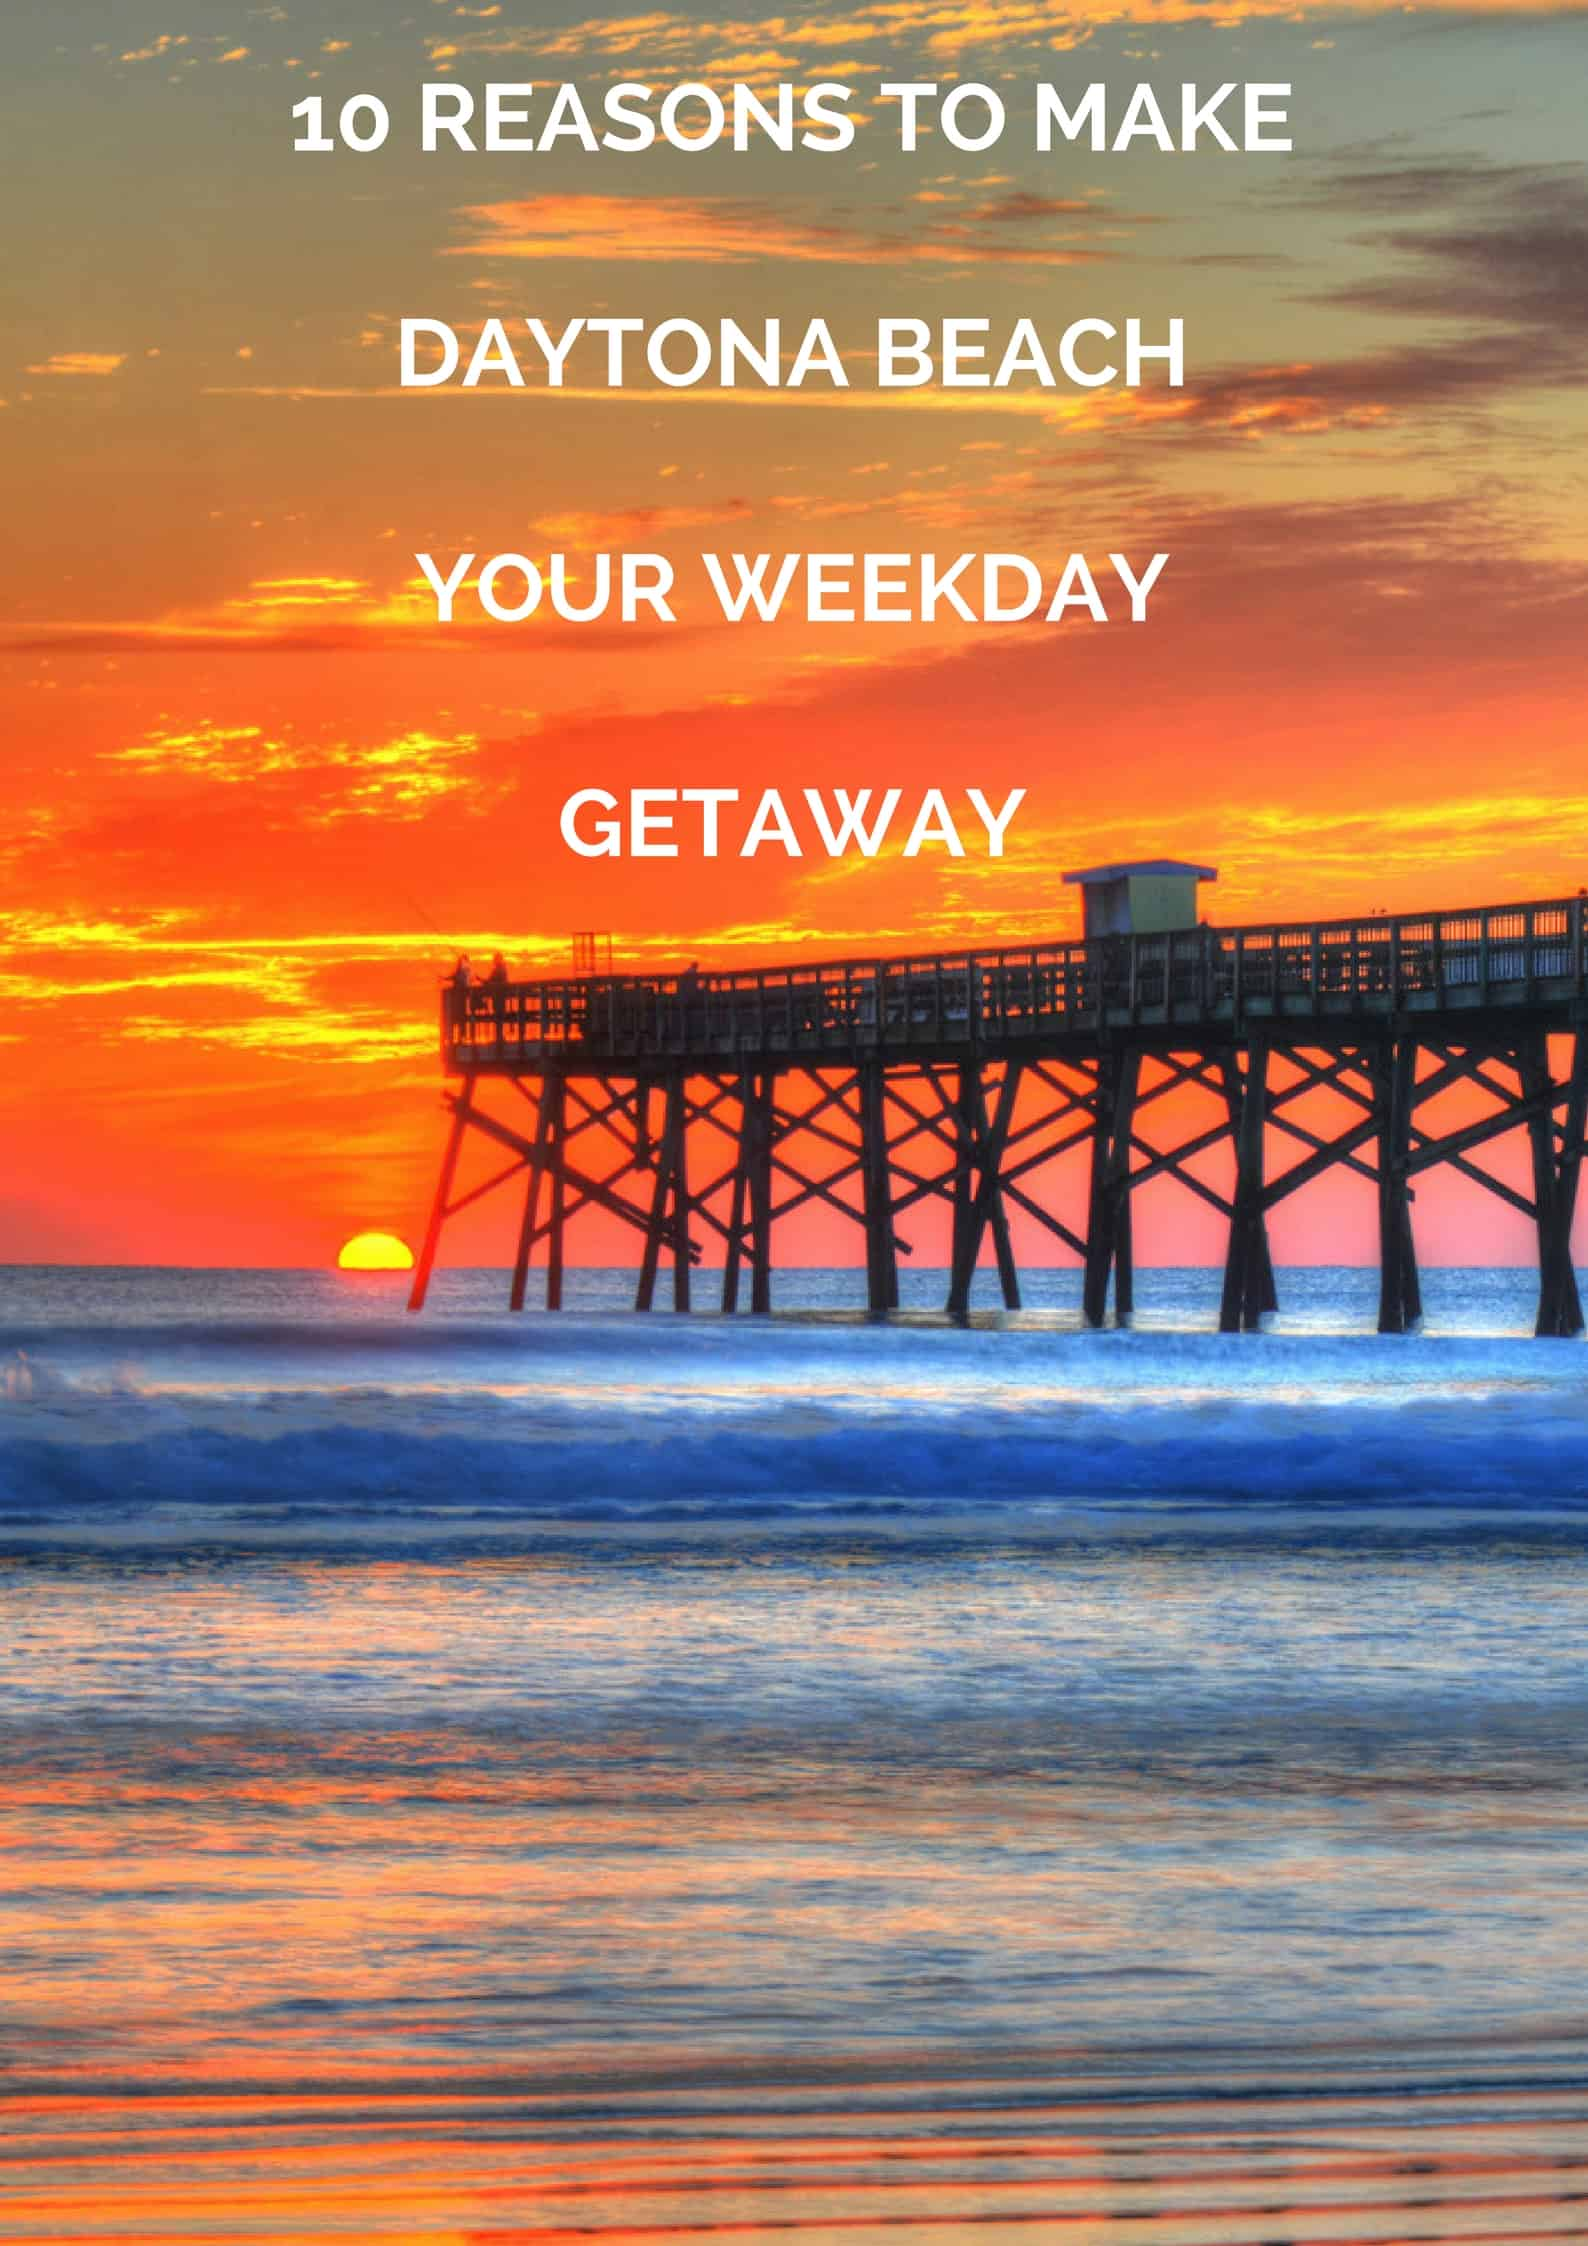 10 Reasons To Make Daytona Beach Your Weekday Getaway! #WeekdayGetaway #DaytonaBeach #ad